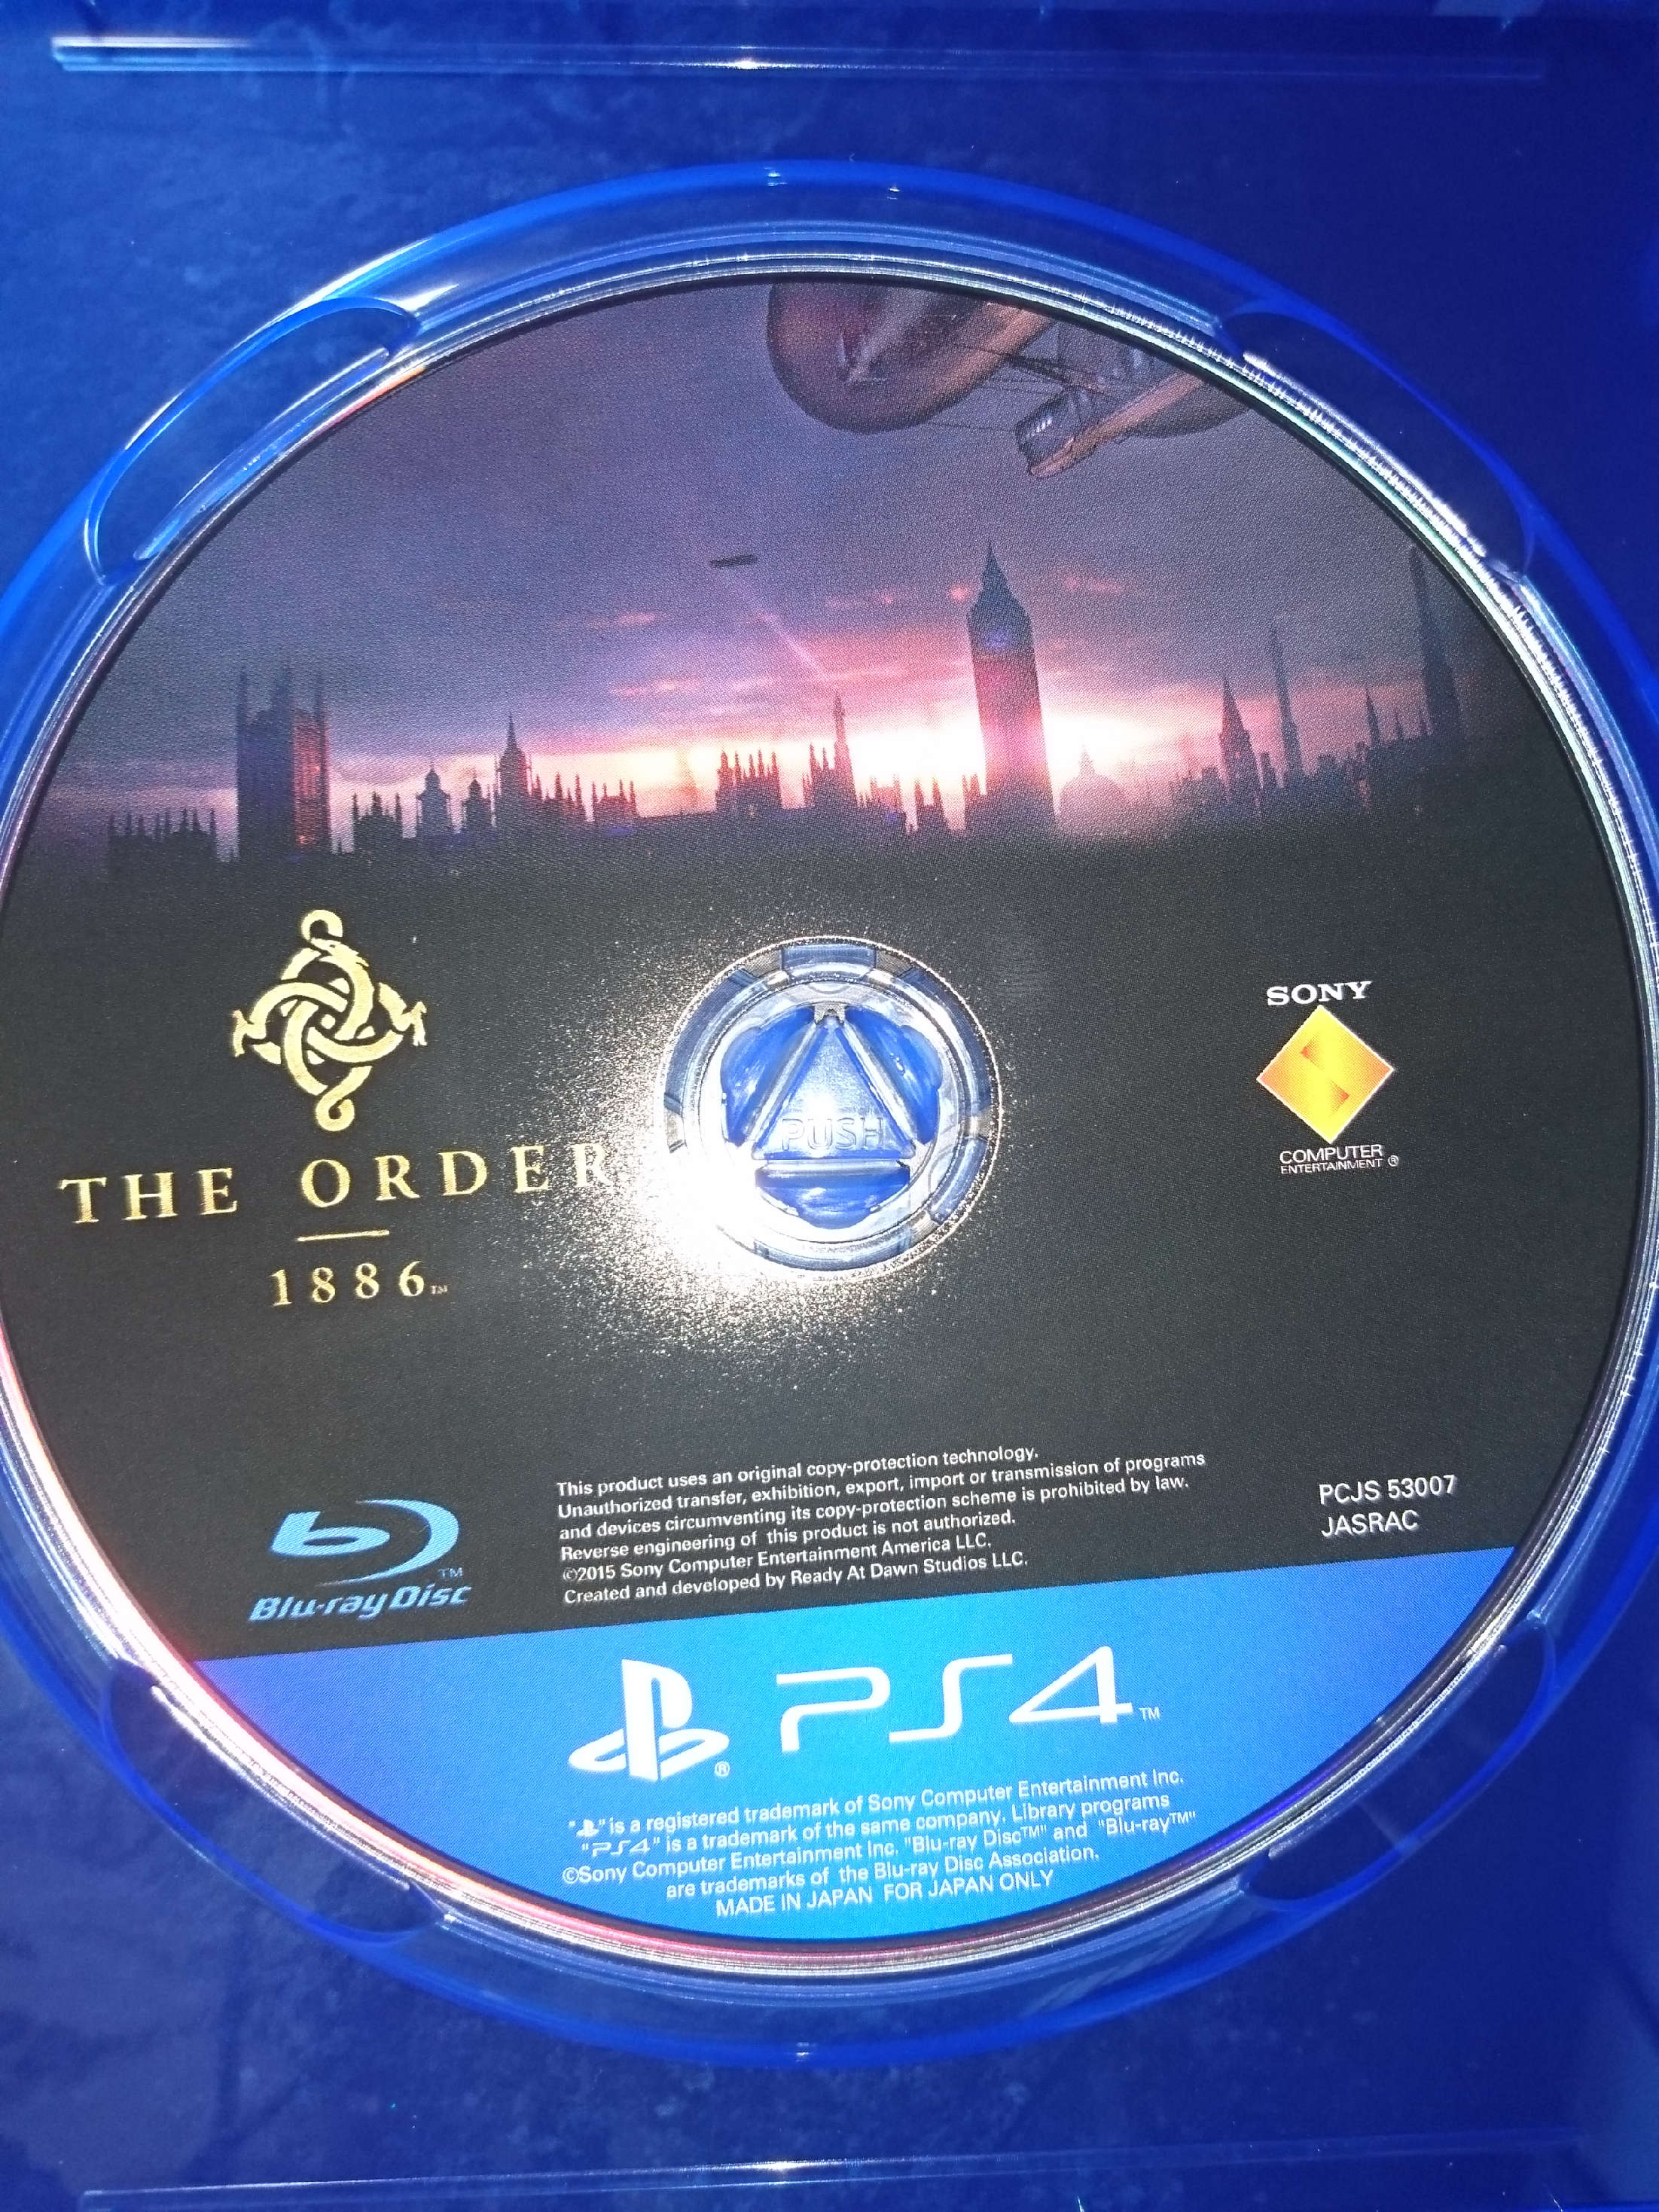 The Order 1886 ディスク